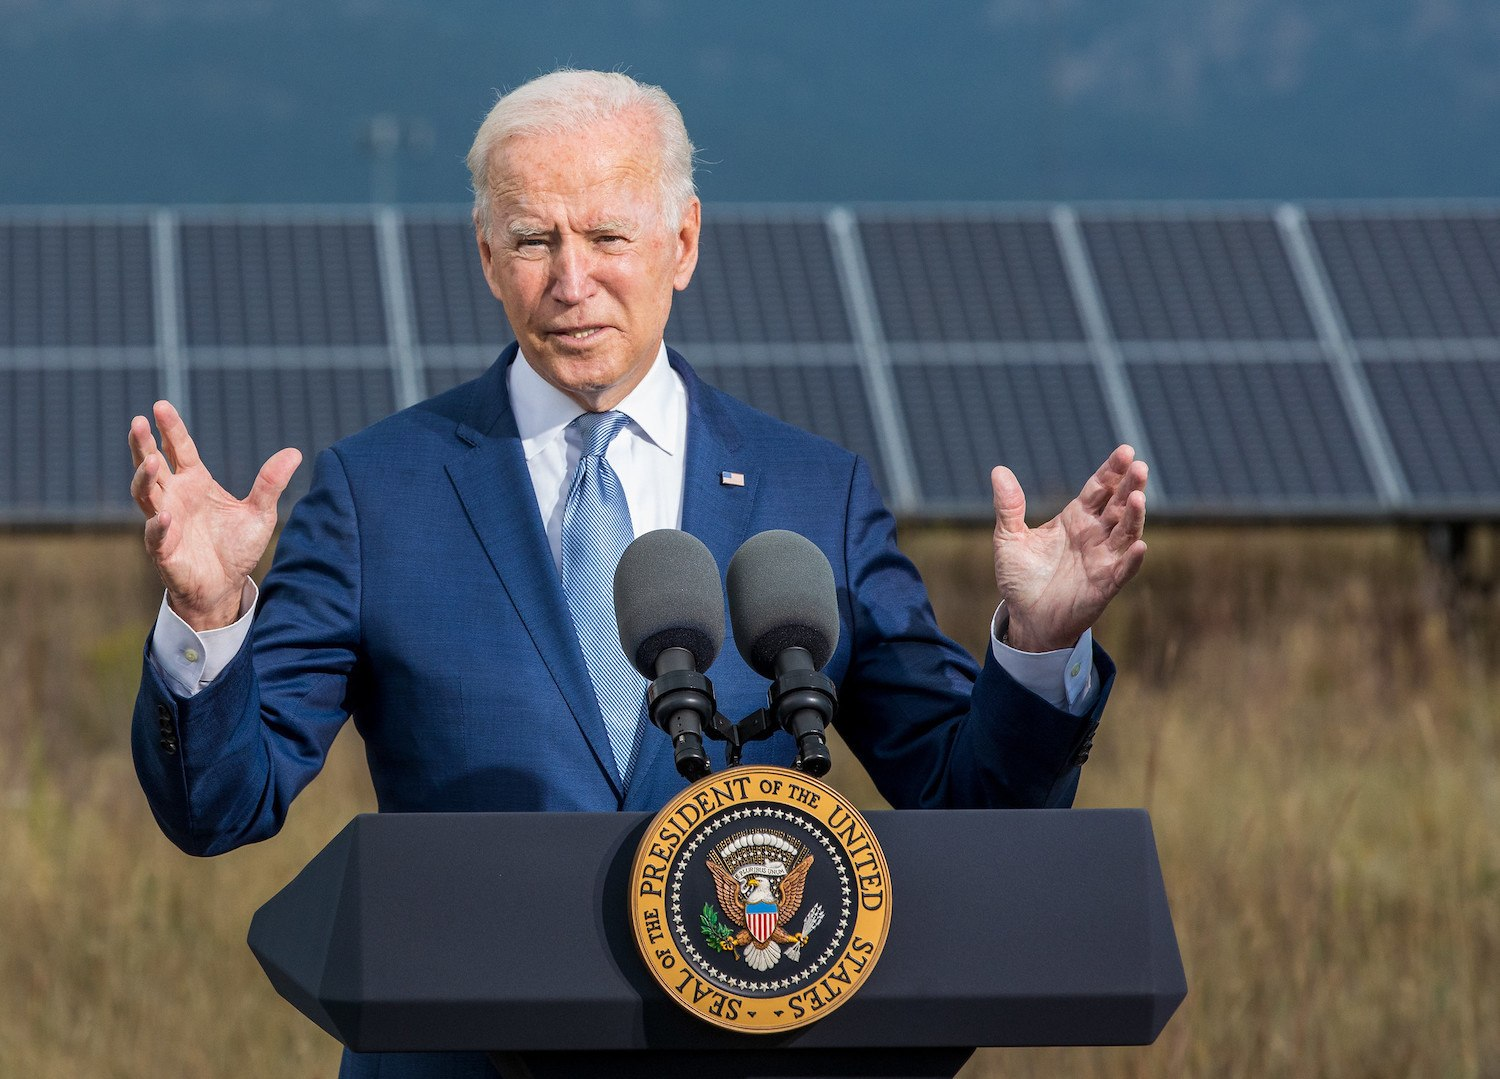 September 14, 2021 - Joe Biden, President of the United States, speaks during a visit the Flatirons Campus of the National Renewable Energy Laboratory in Arvada, Colorado.